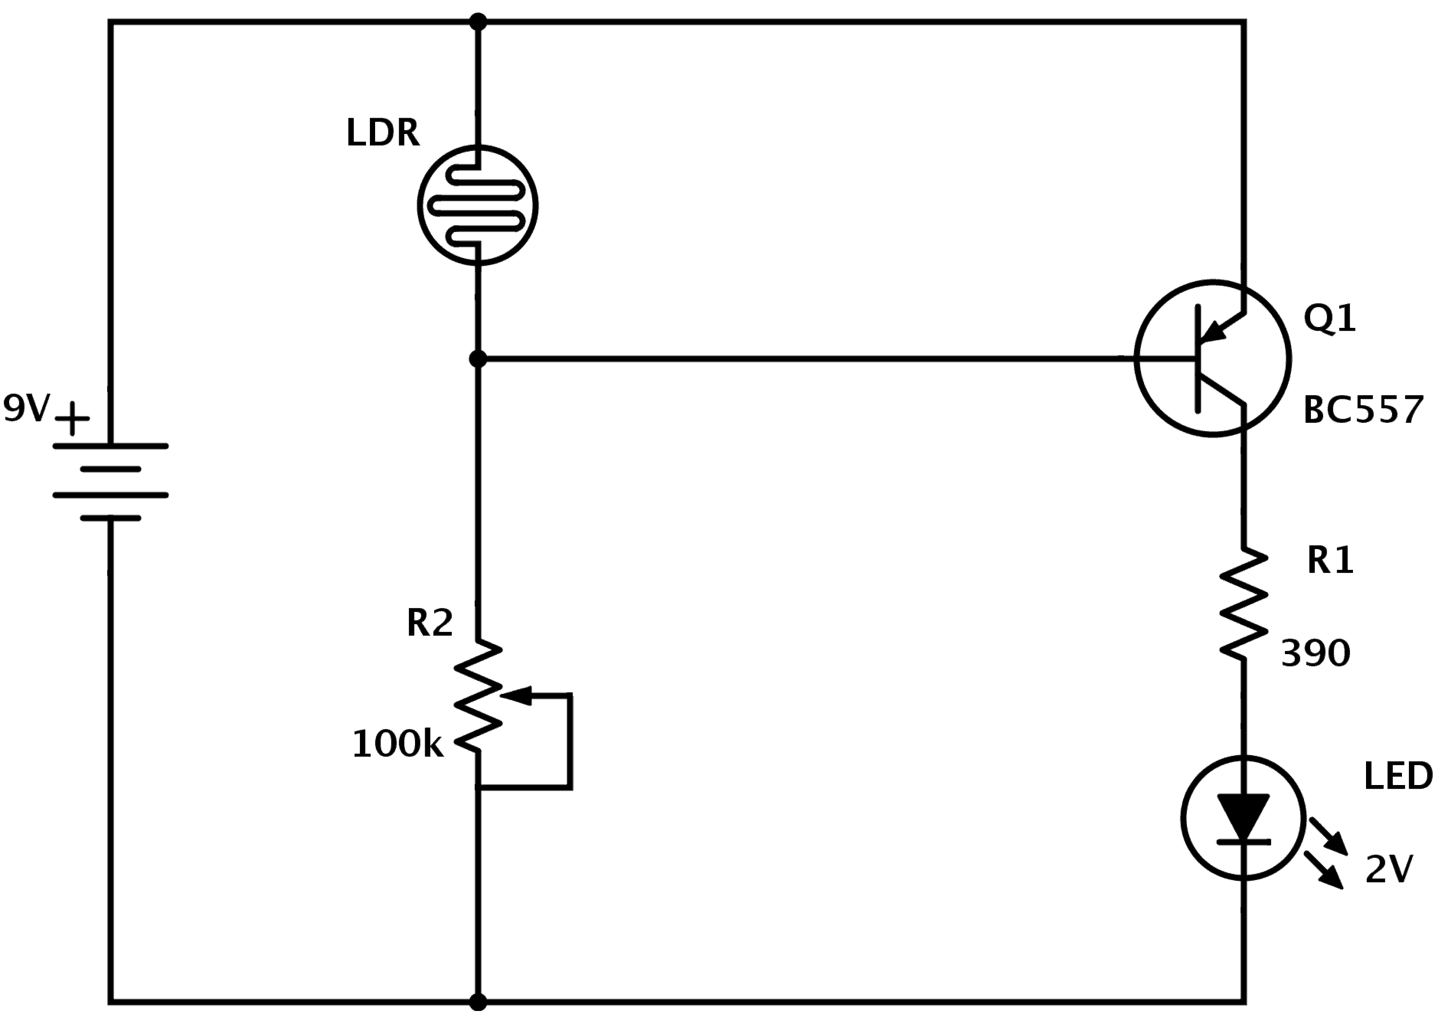 Ldr Circuit Diagram Build Electronic Circuits You Should Print Out A Copy Of This Wiring It Come In With Pnp Transistor Dark Detector